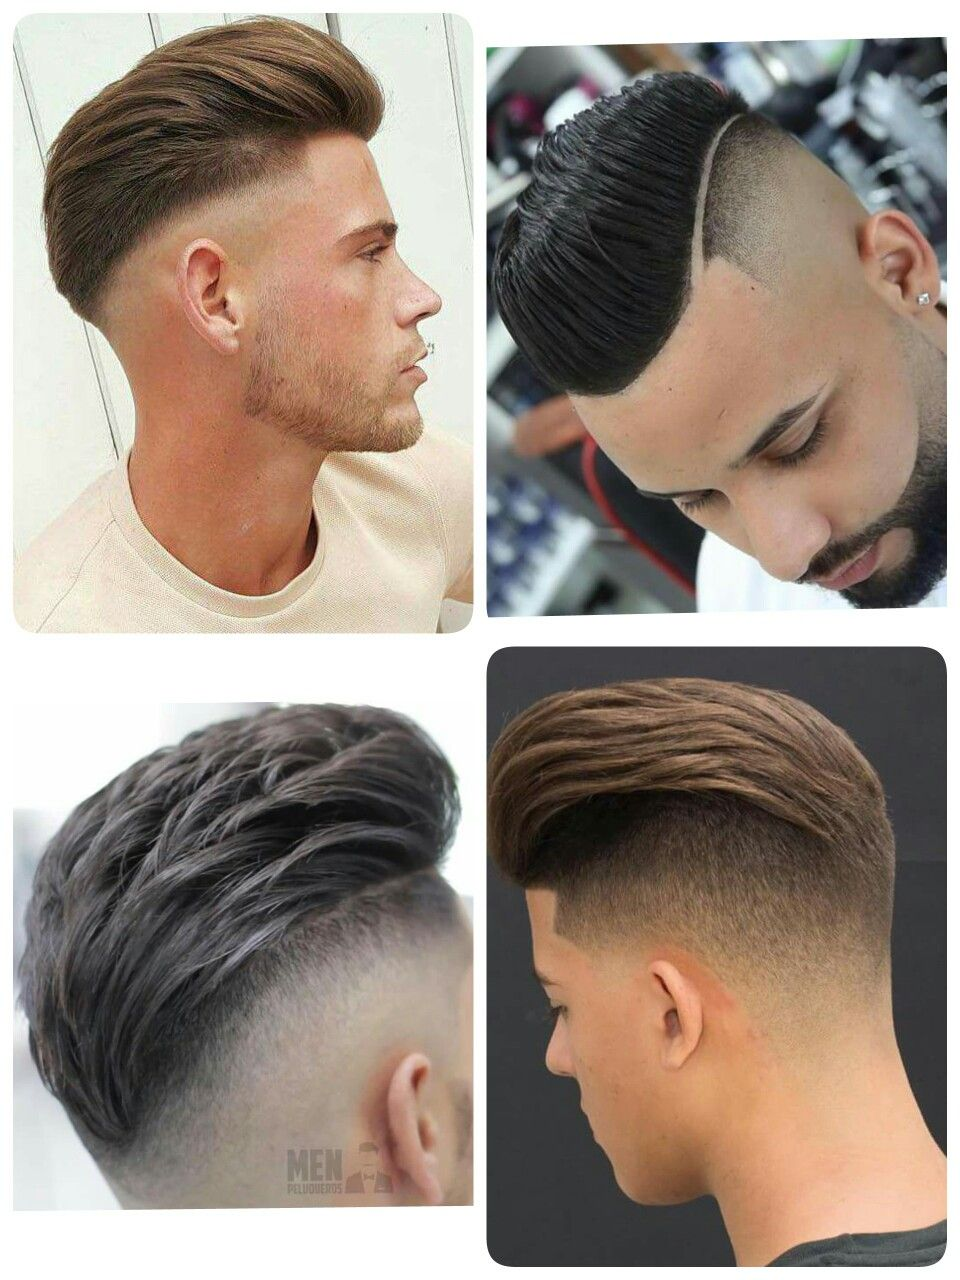 Clean men's haircut pin by debottam kanjilal on hair styles  pinterest  hair style